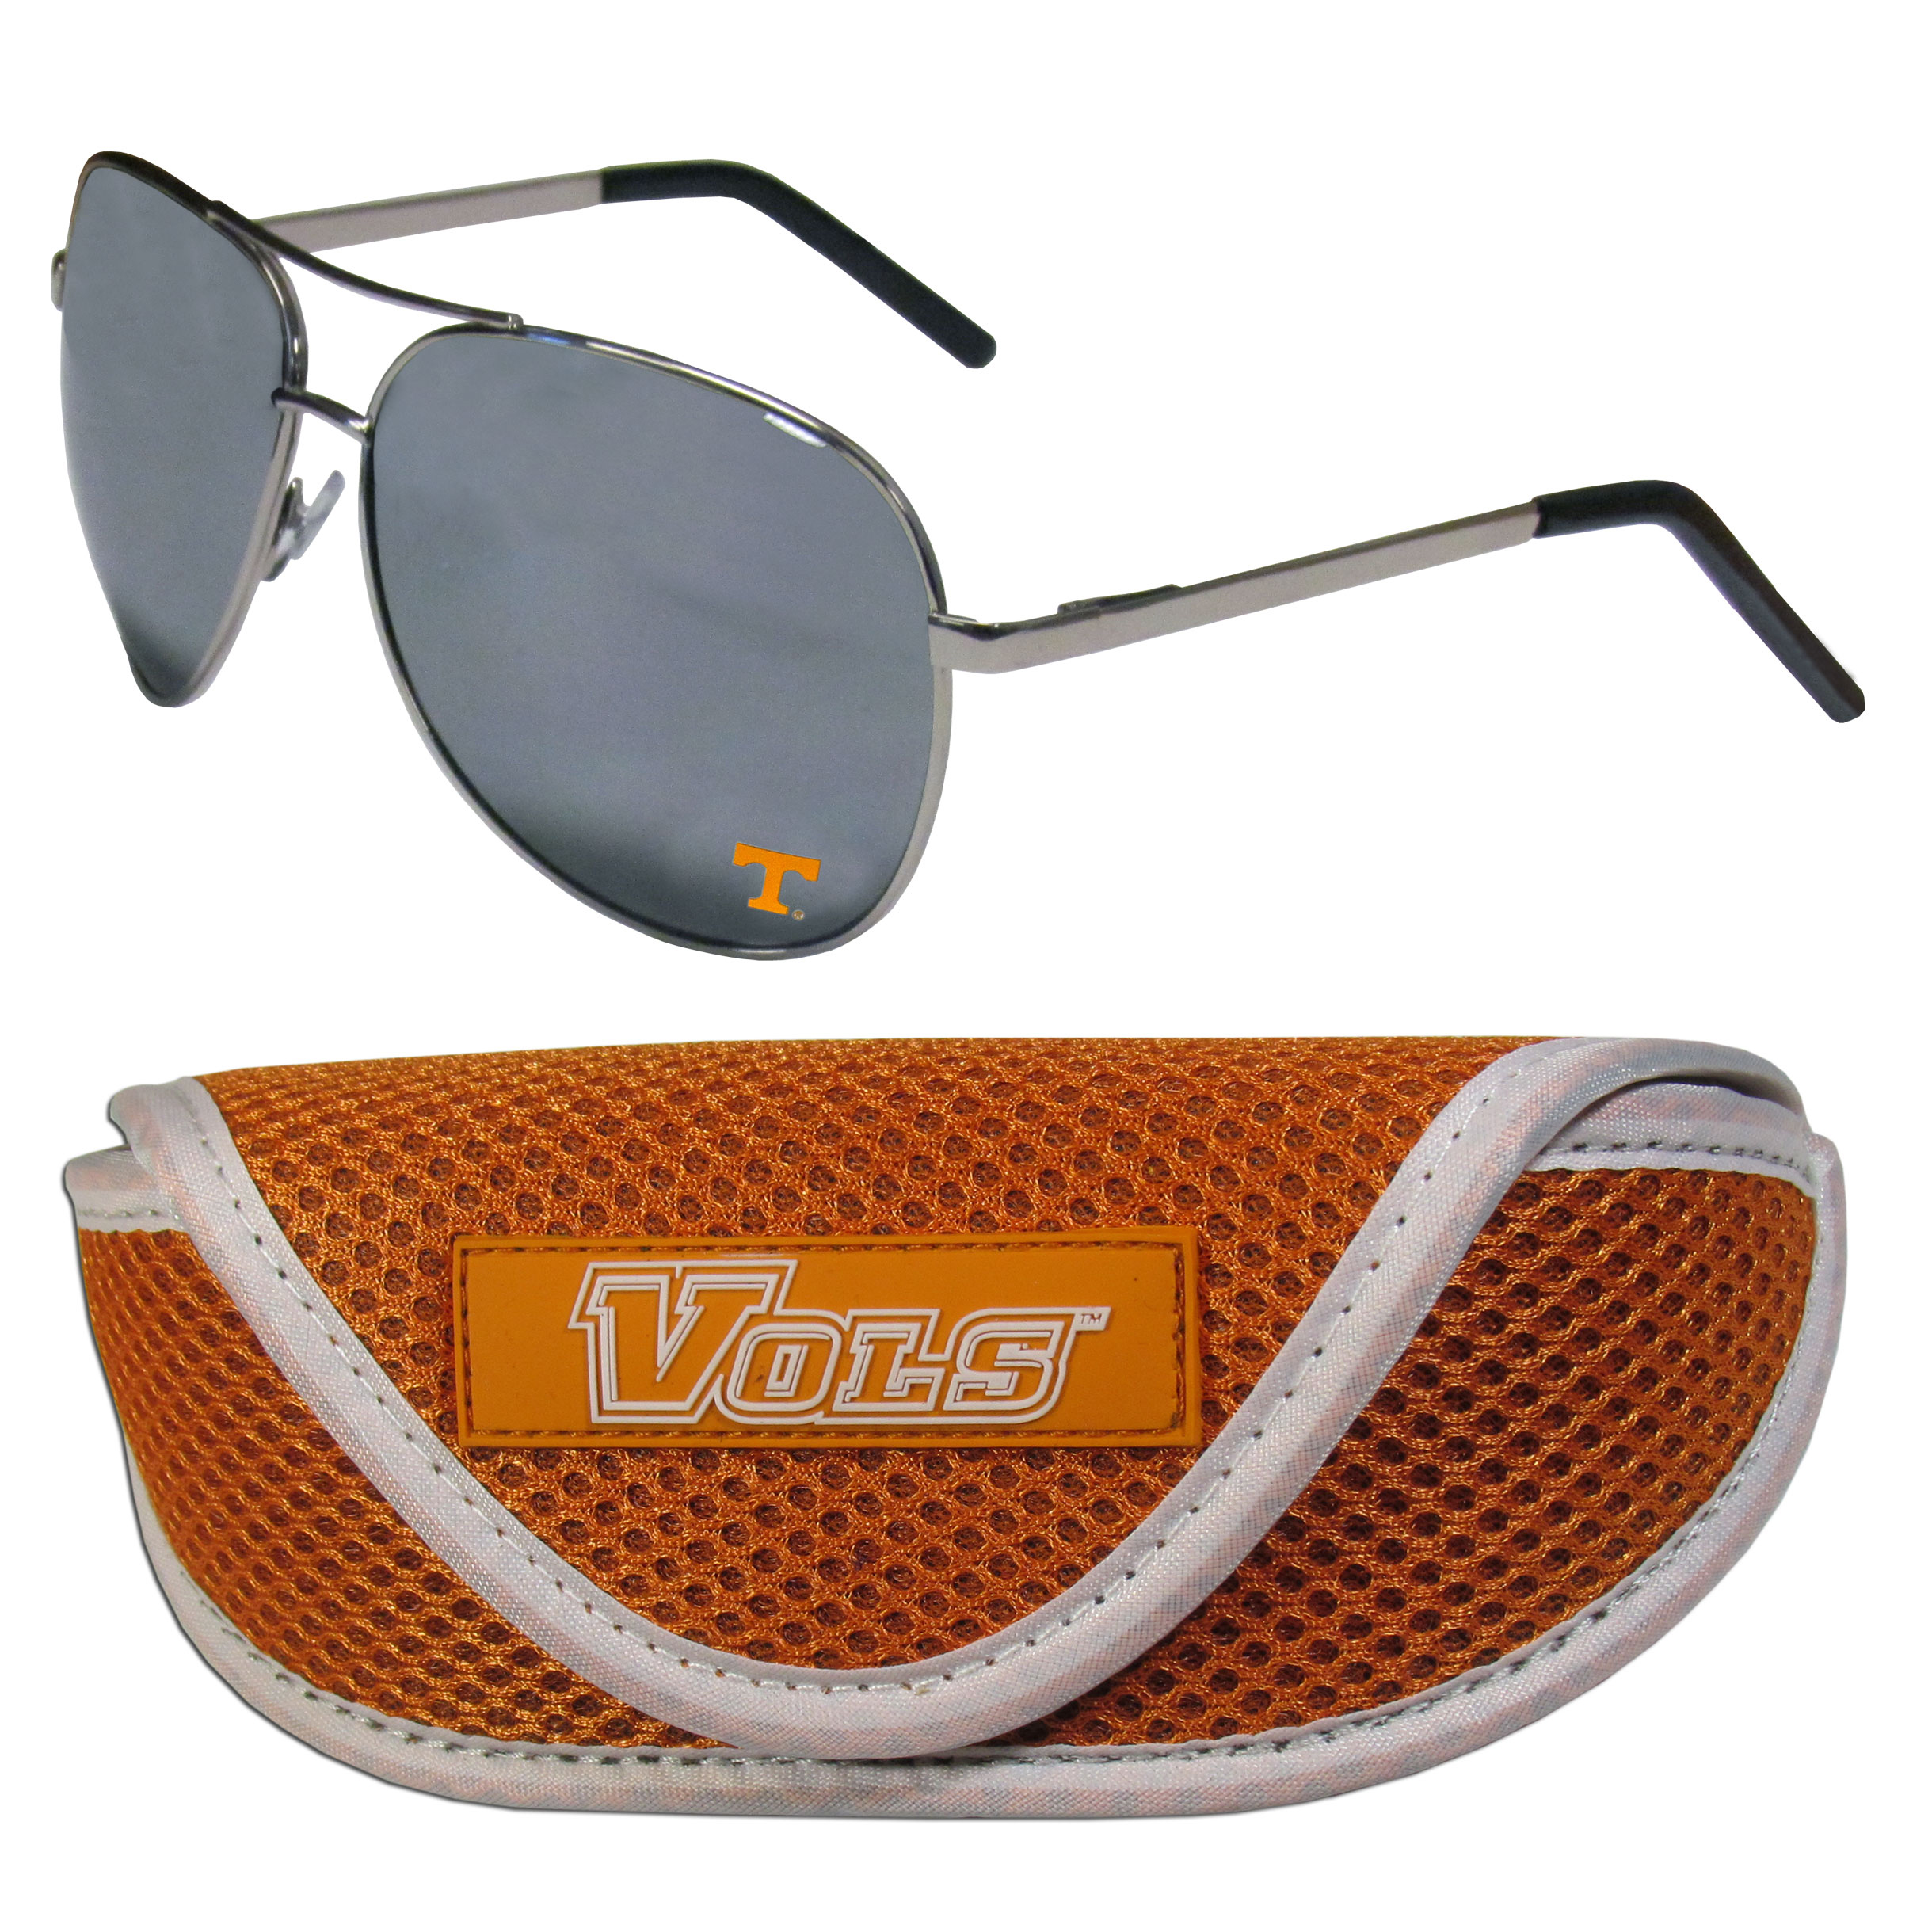 Tennessee Volunteers Aviator Sunglasses and Sports Case - Aviator sunglasses are truly an iconic retro fashion statement that never goes out-of-style. Our Tennessee Volunteers  aviator sunglasses pair this classic look with your love of the game. The iridium coated lenses reduce glare while driving, boating, golfing and their 100% UVA/UVB rating provides you with the maximum UV protection for all your outdoor activities. A millennial favorite, these affordable designer frames are the perfect eyewear accessory for a sports fan that is looking for high-quality at an affordable price. The durable, flex hinged frames are tough enough for hiking and camping or if you prefer sun bathing by the pool or on the beach these shades will really stand the test of time. The sunglasses come with a sporty case which has a large team logo on the lid that will make even the most die-hard fan proud!